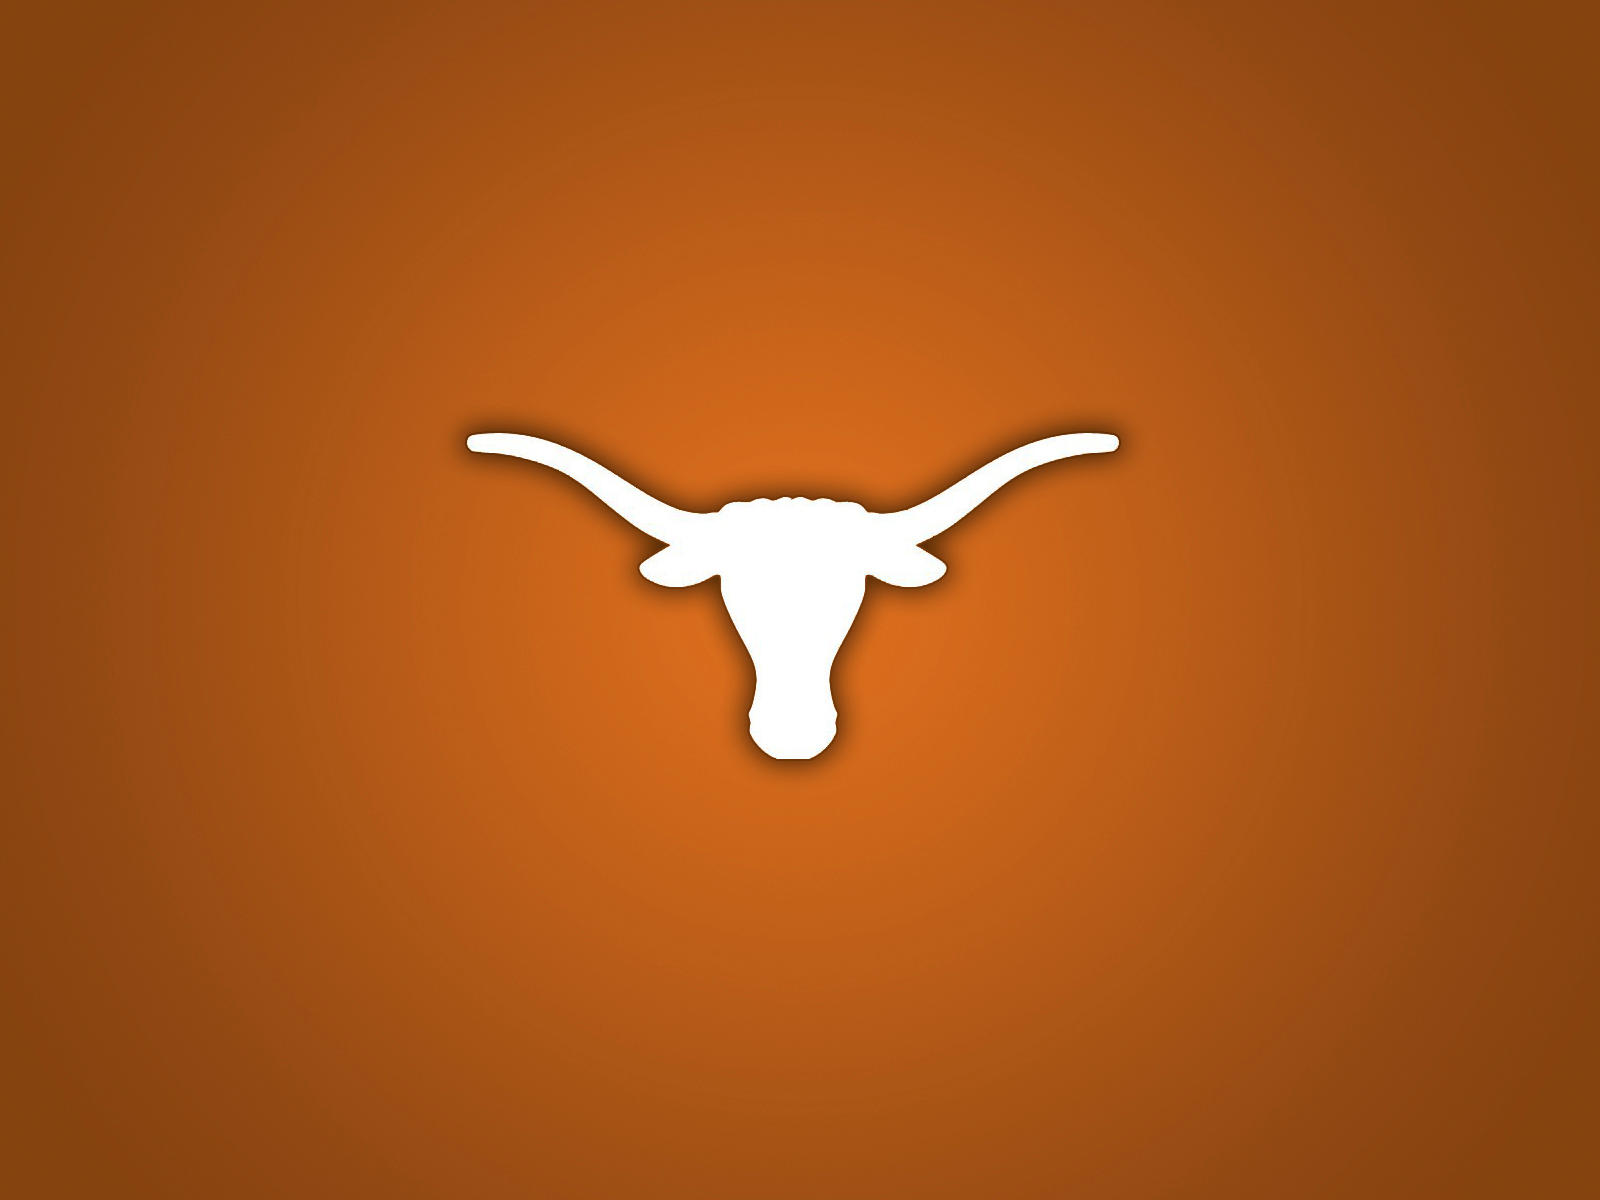 How To Draw Texas Longhorns